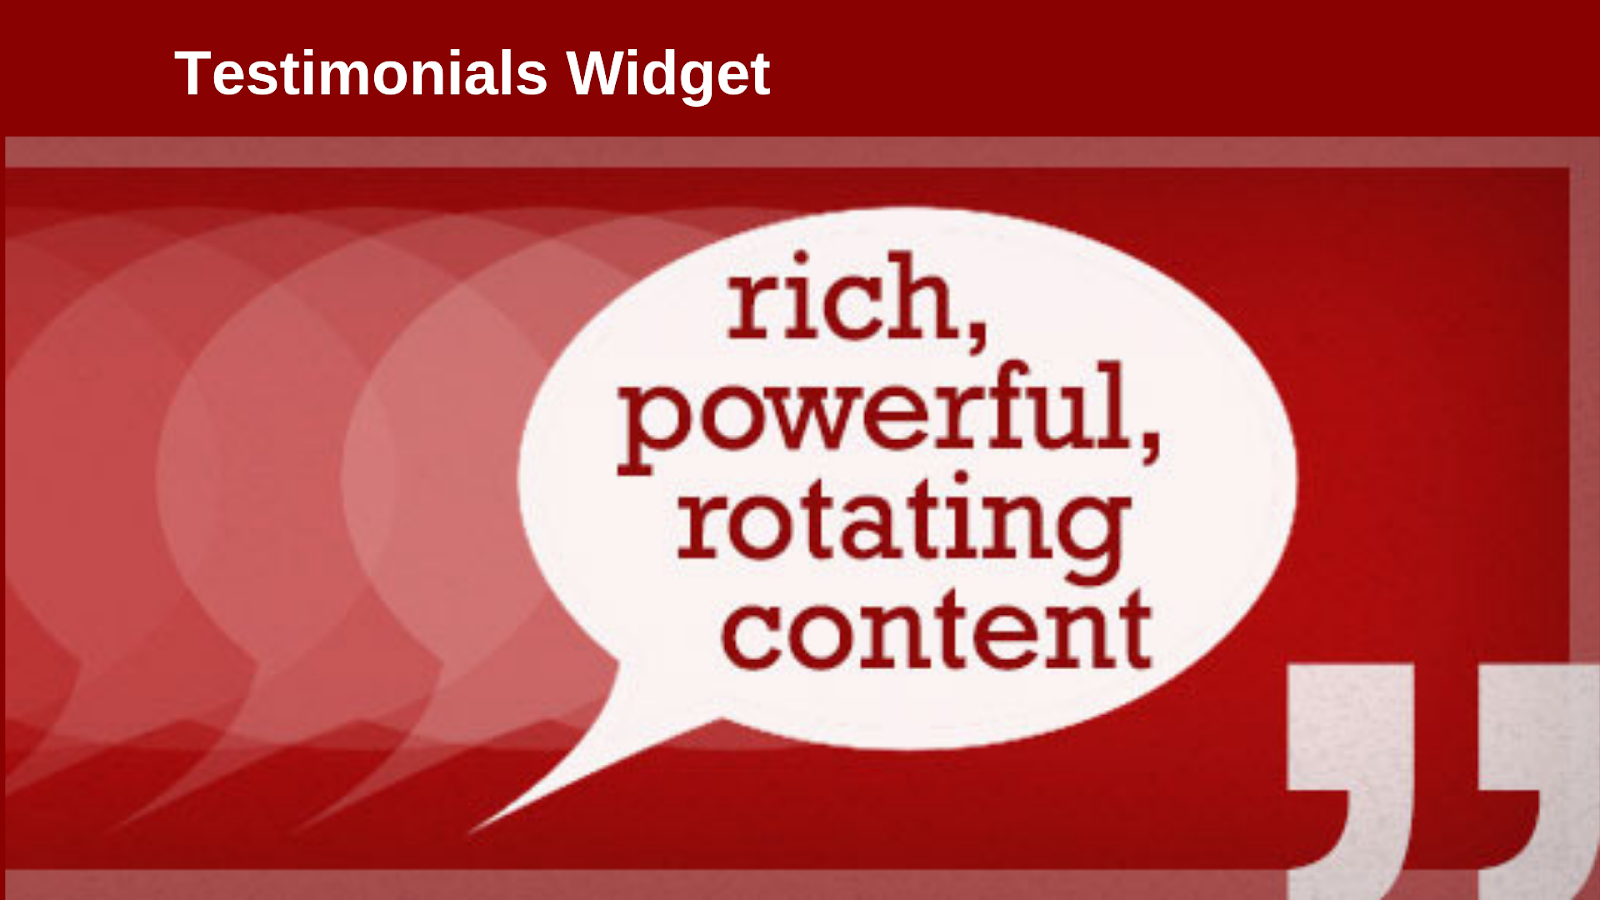 Testimonials widget - WordPress testimonial plugins